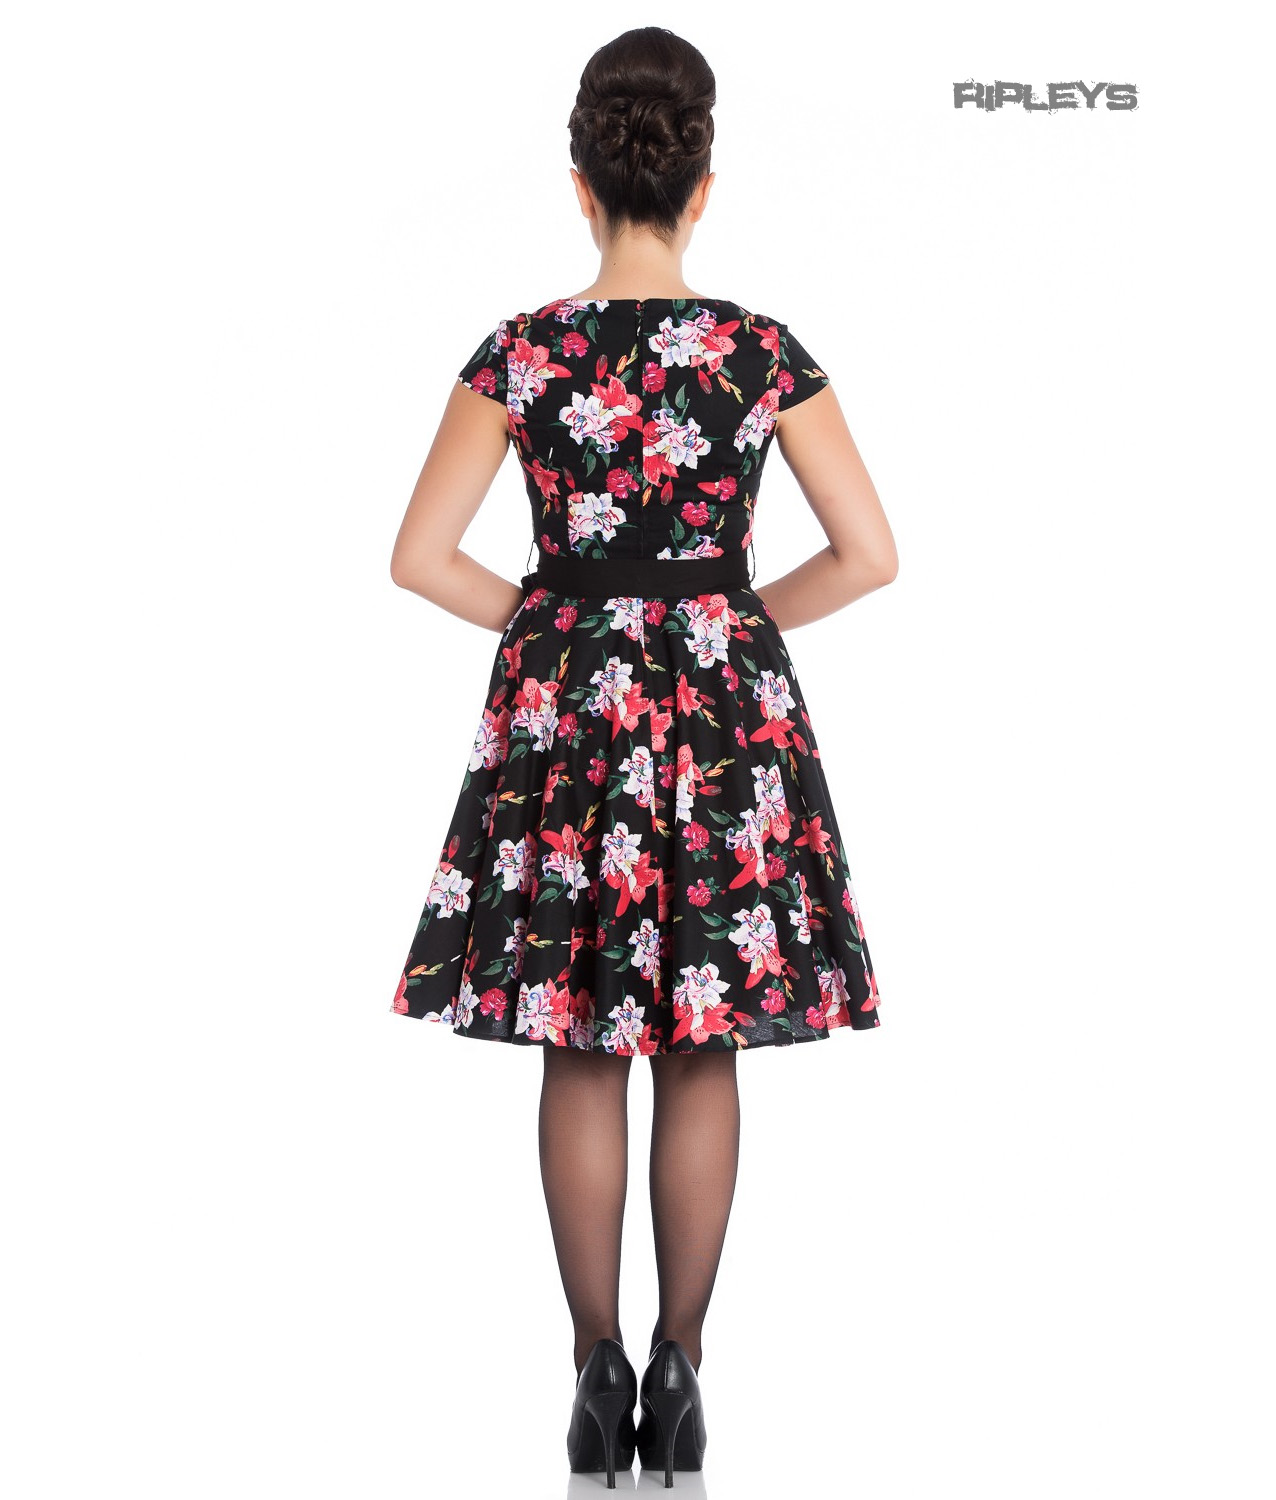 Hell-Bunny-Pin-Up-Mid-Length-50s-Dress-LILIANA-Lilly-Black-Flowers-Bow-All-Sizes thumbnail 12